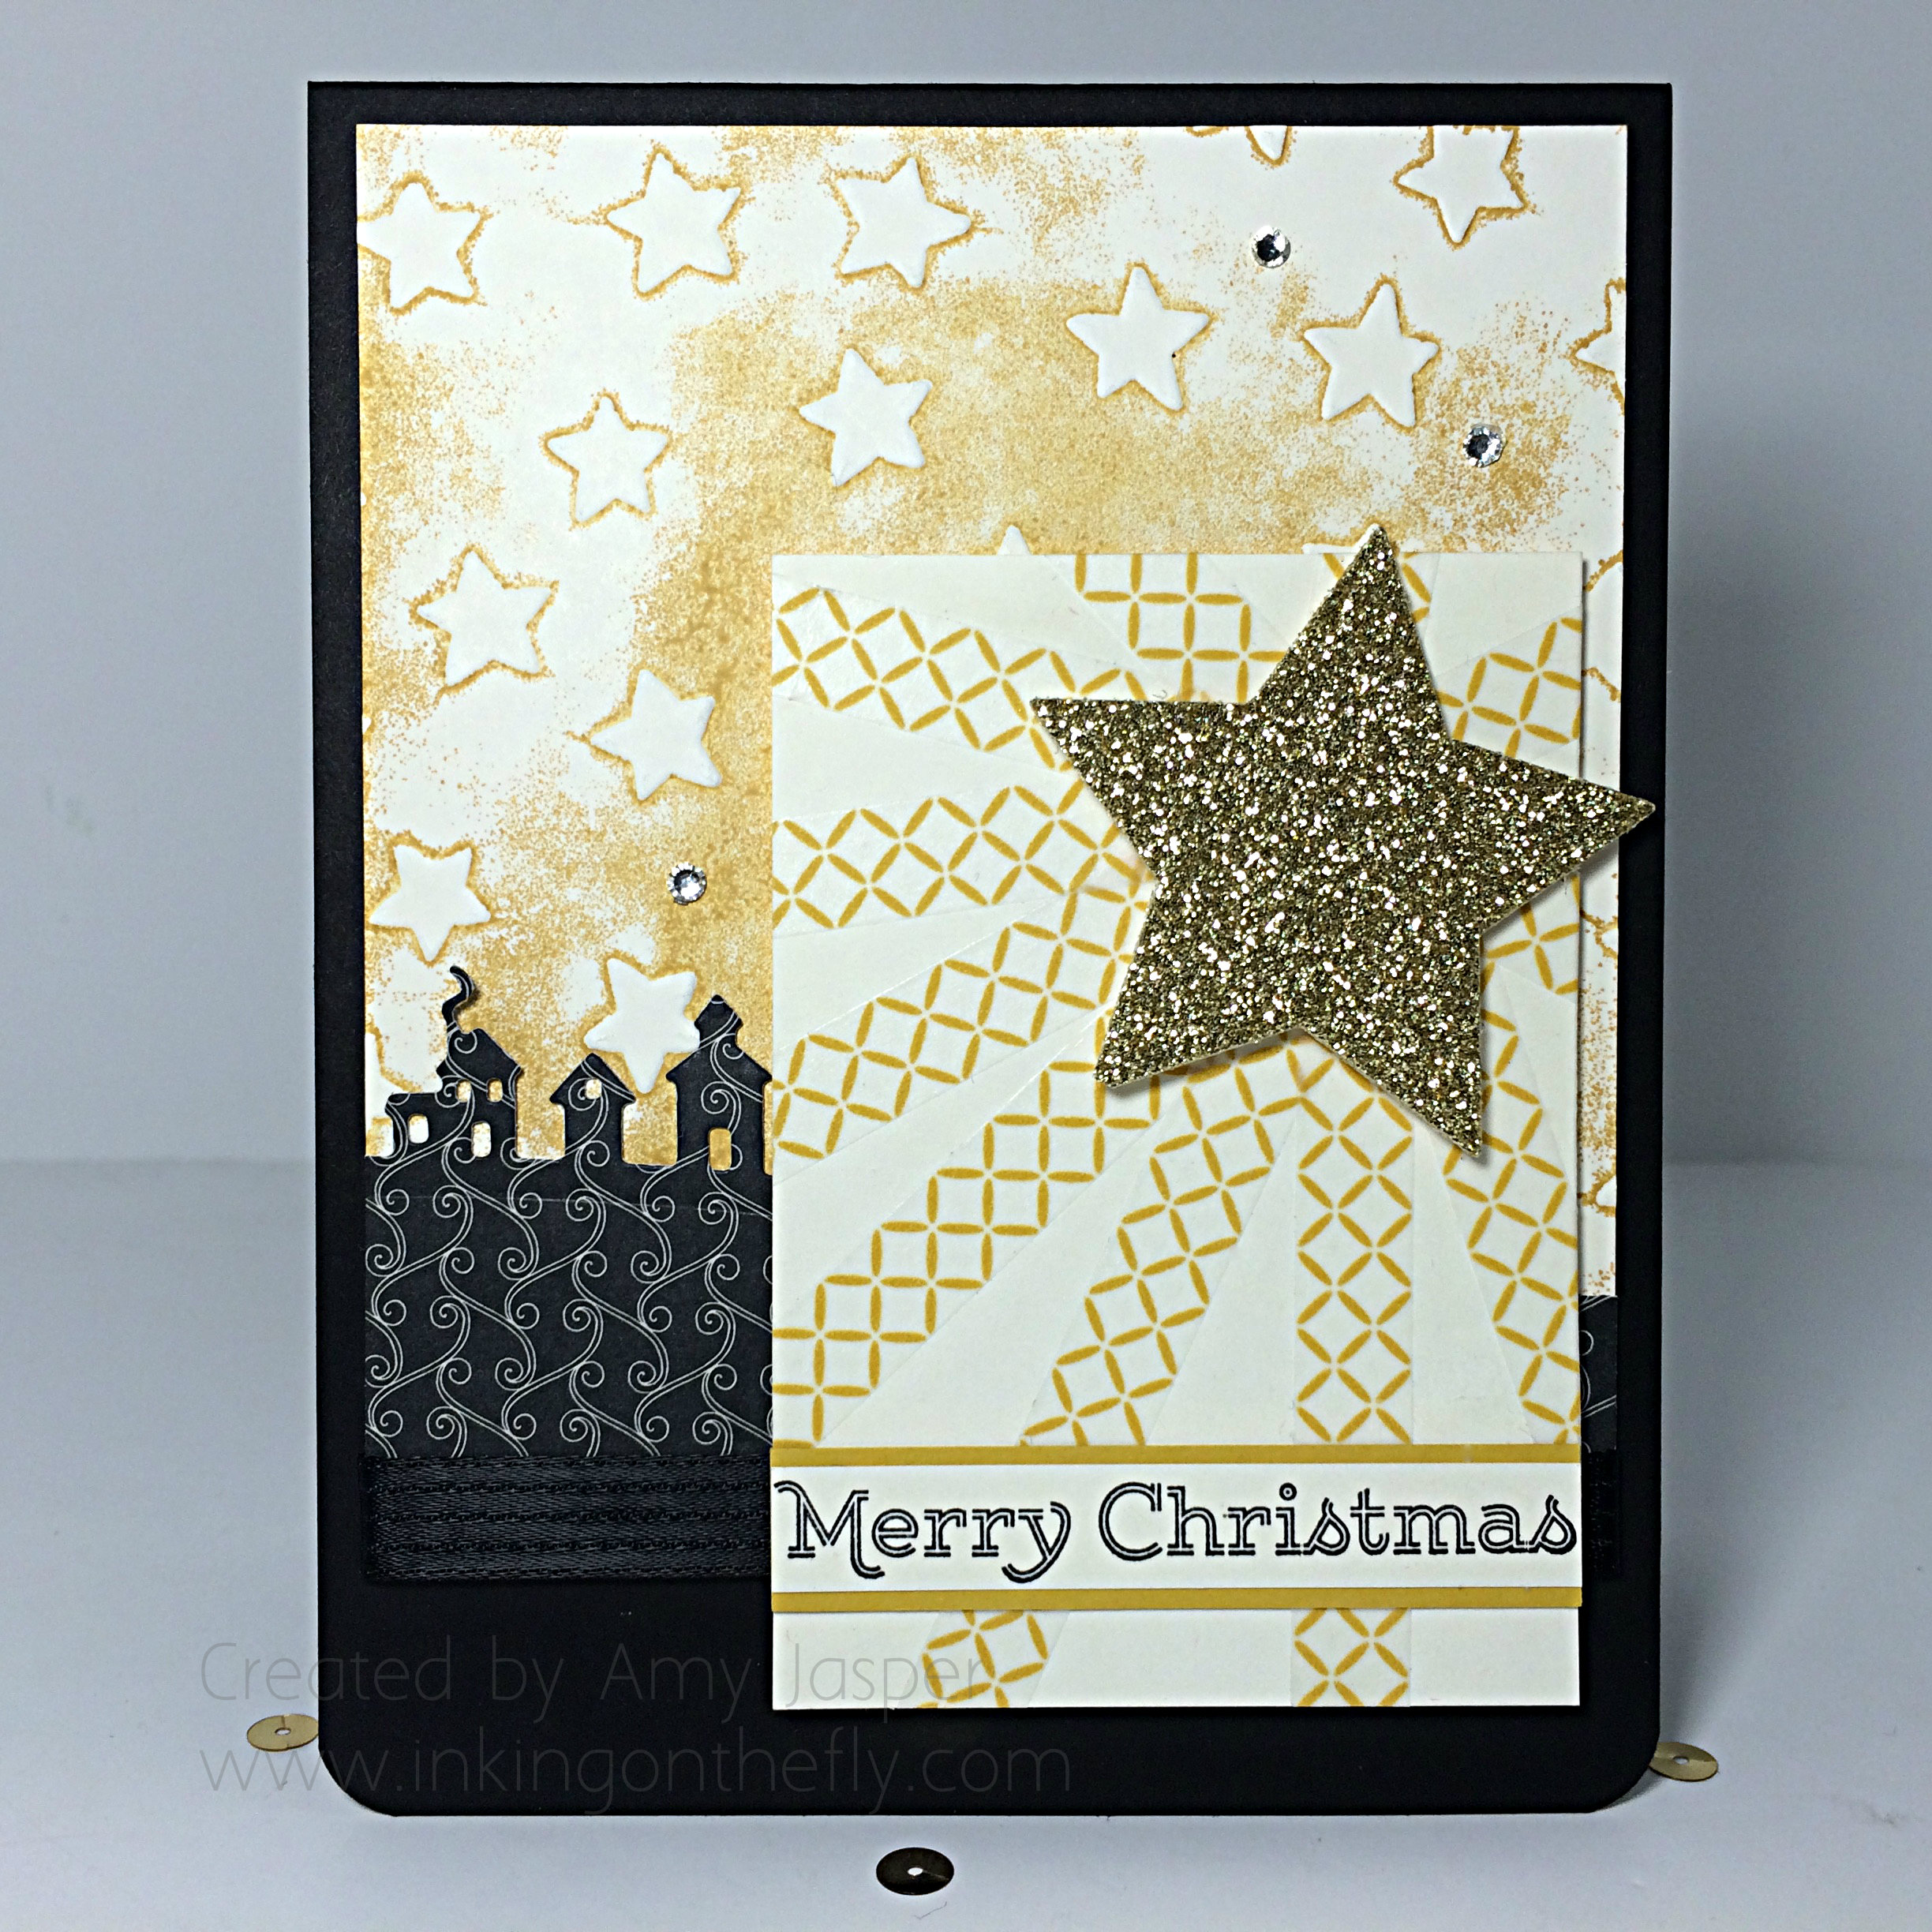 Under a Starry Sky created by Amy Jasper www.inkingonthefly.com with Sleighride Edgelits, Stars Embossing Folder, washi tape